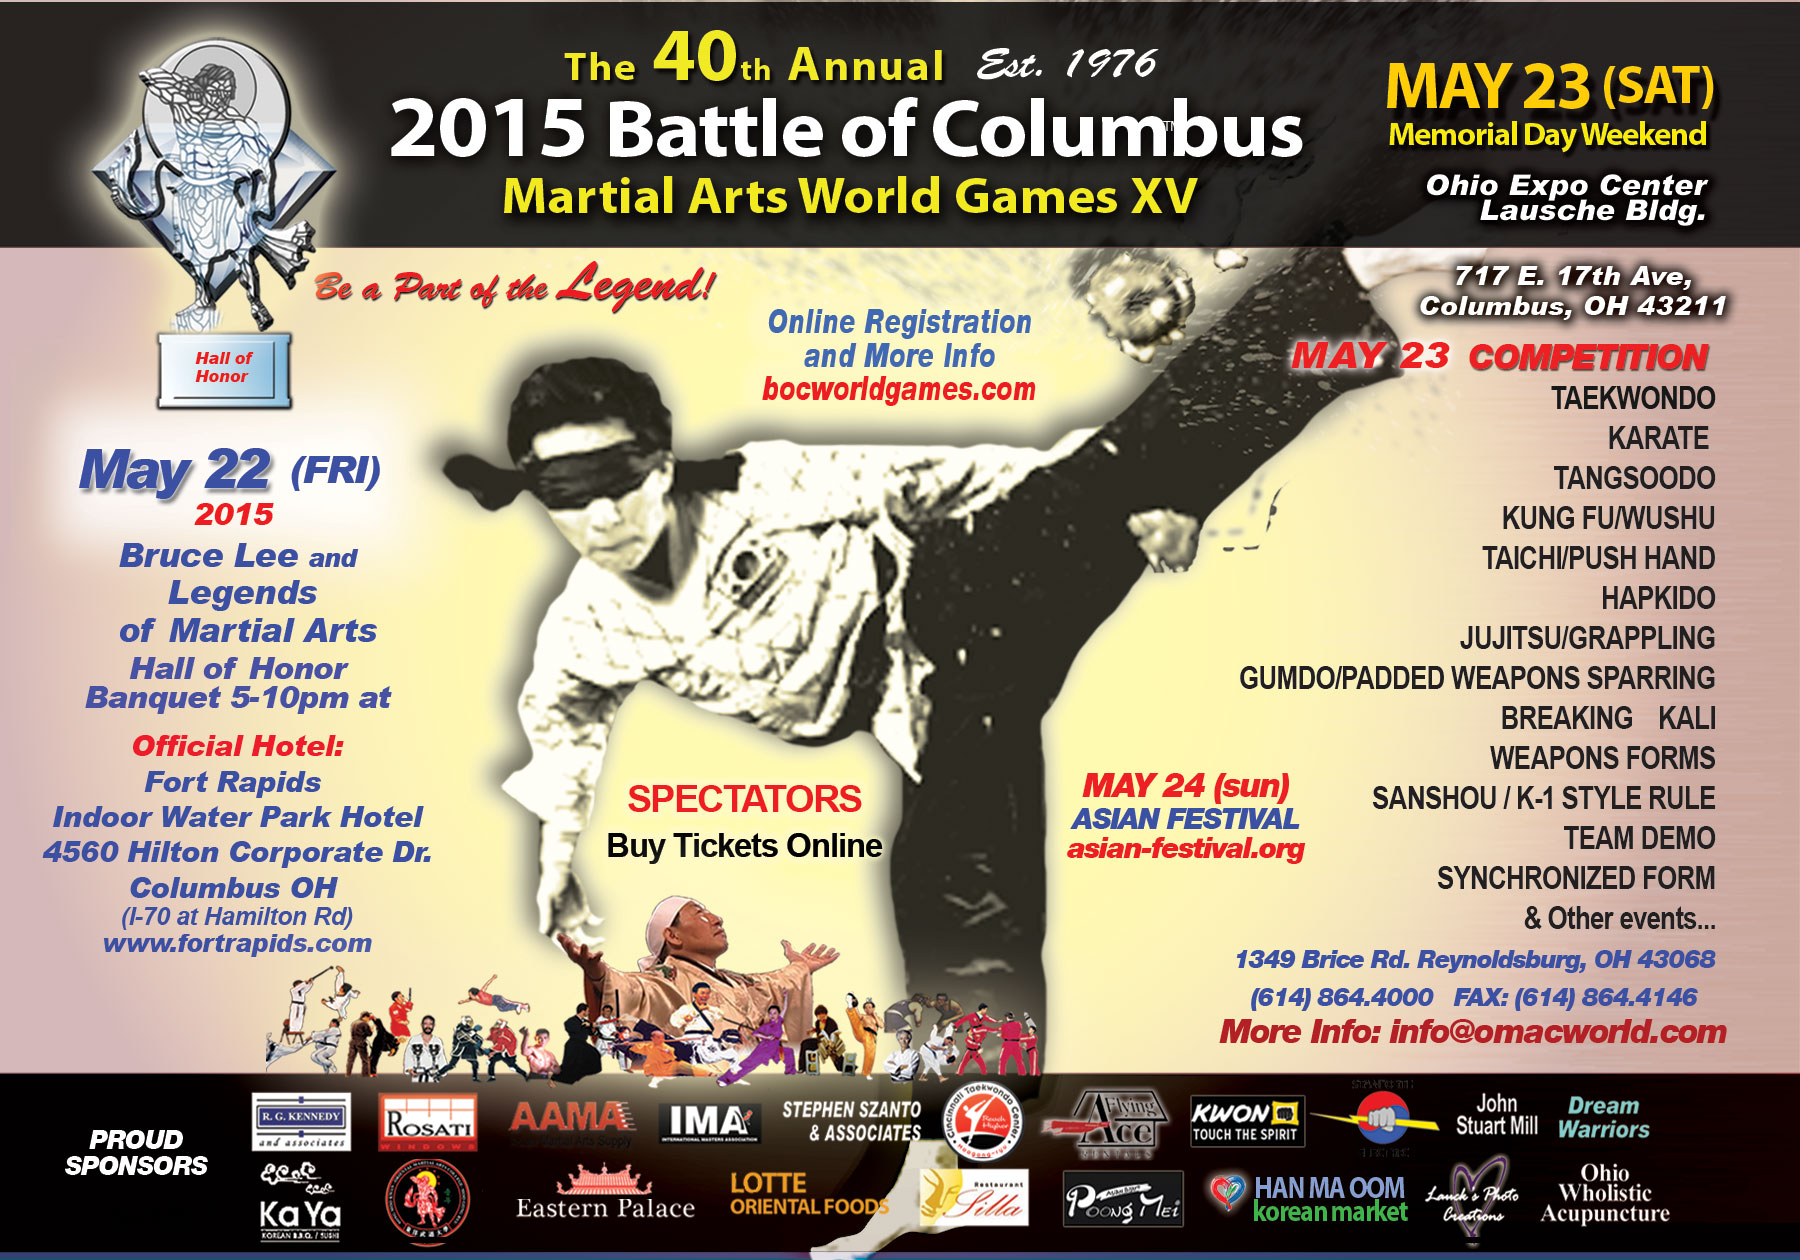 Battle of Columbus 2015